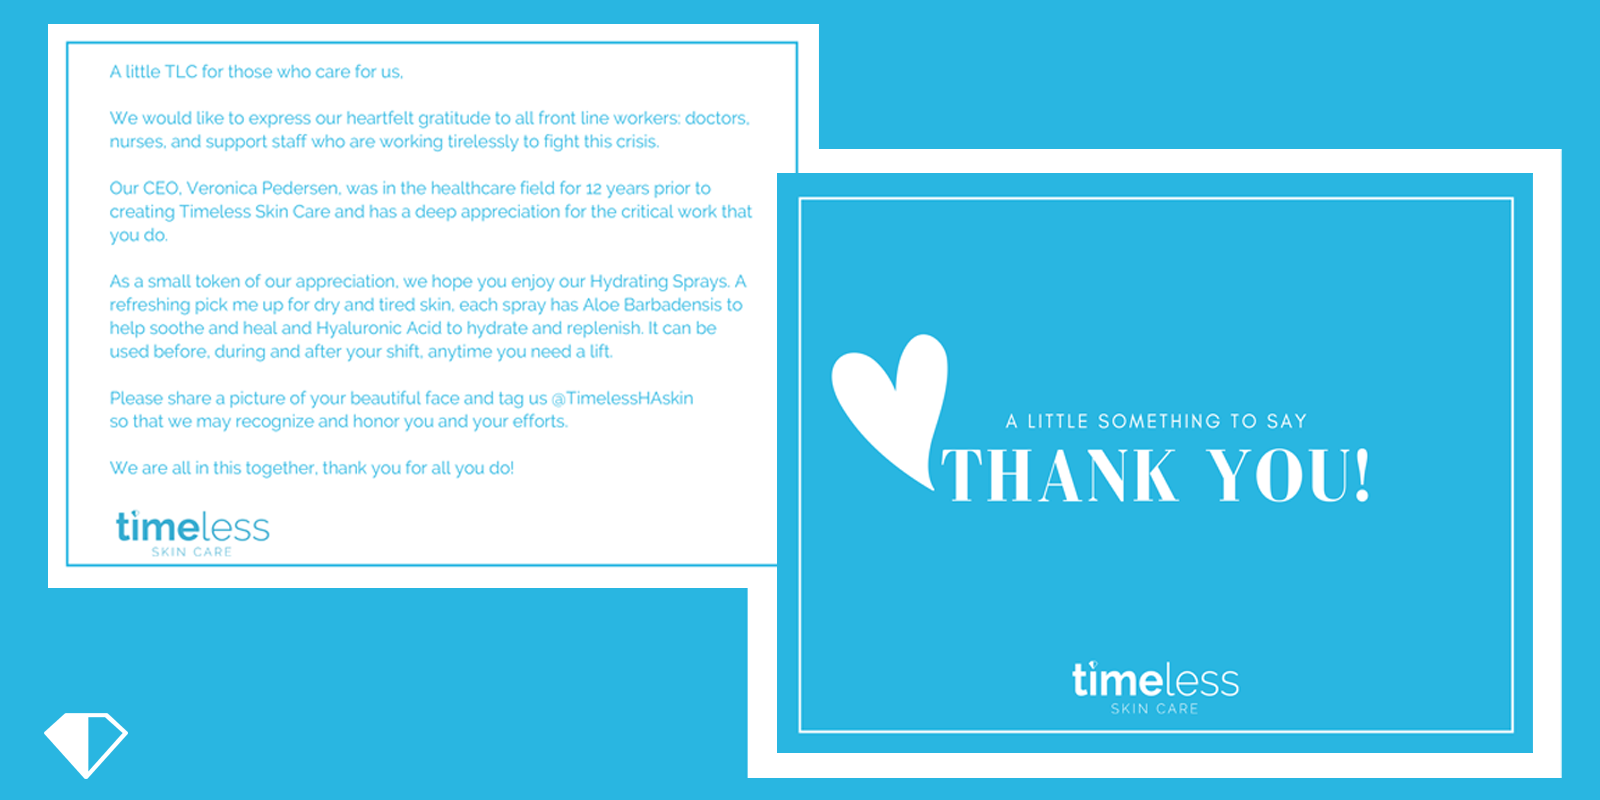 thank you from timeless skin care